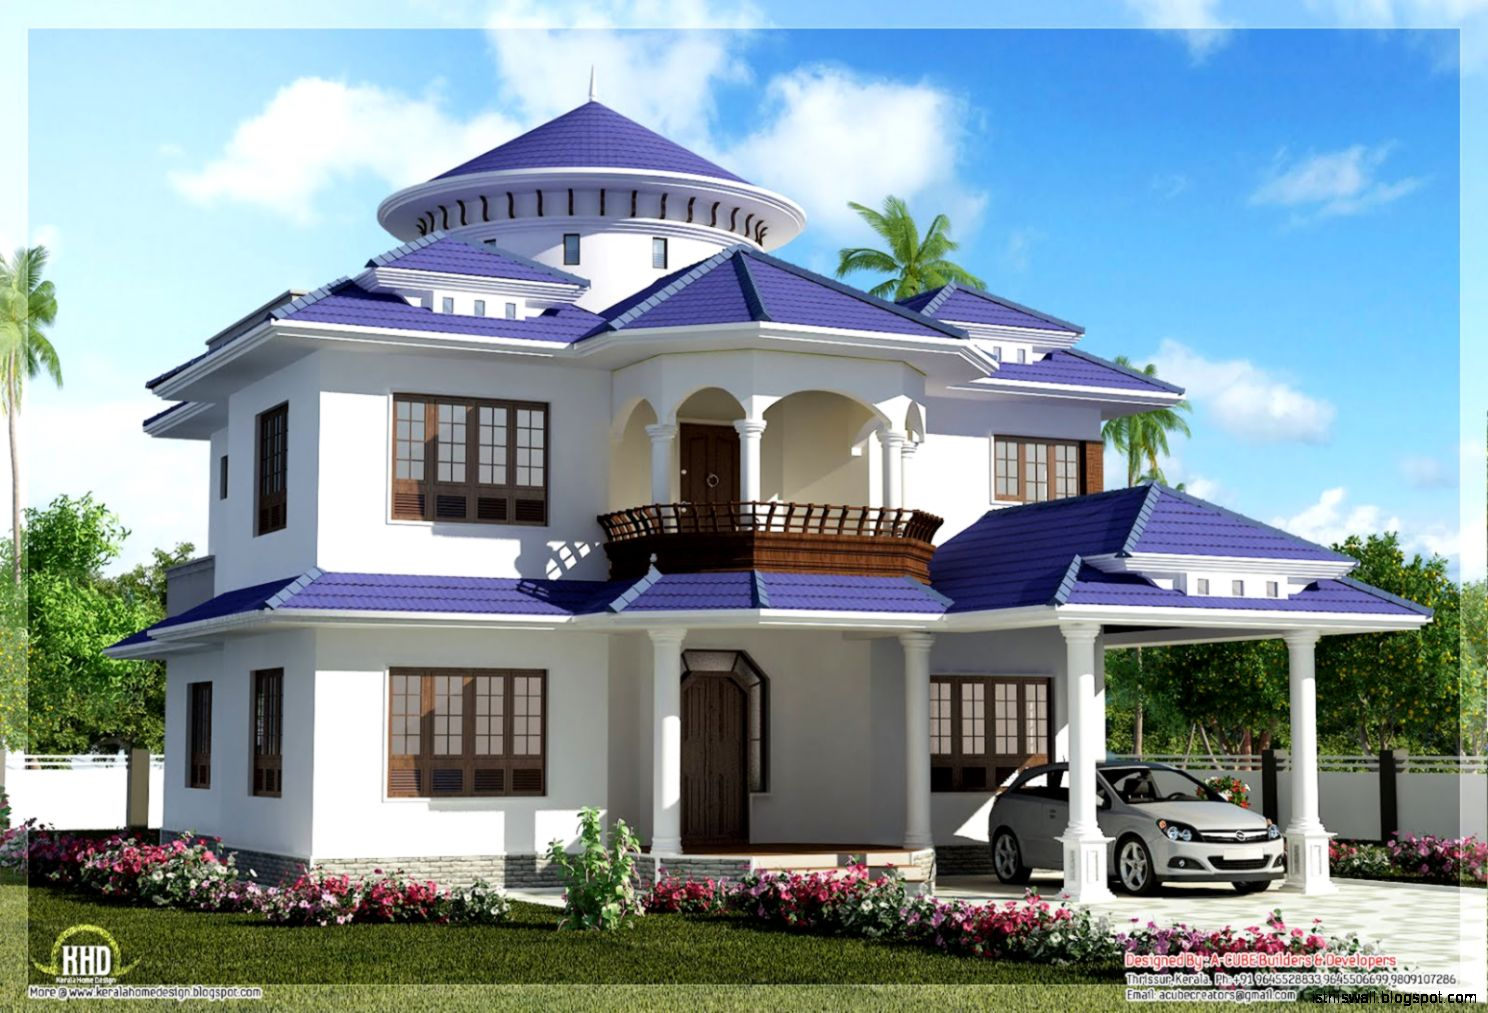 Home Design Construction | Home Design Ideas